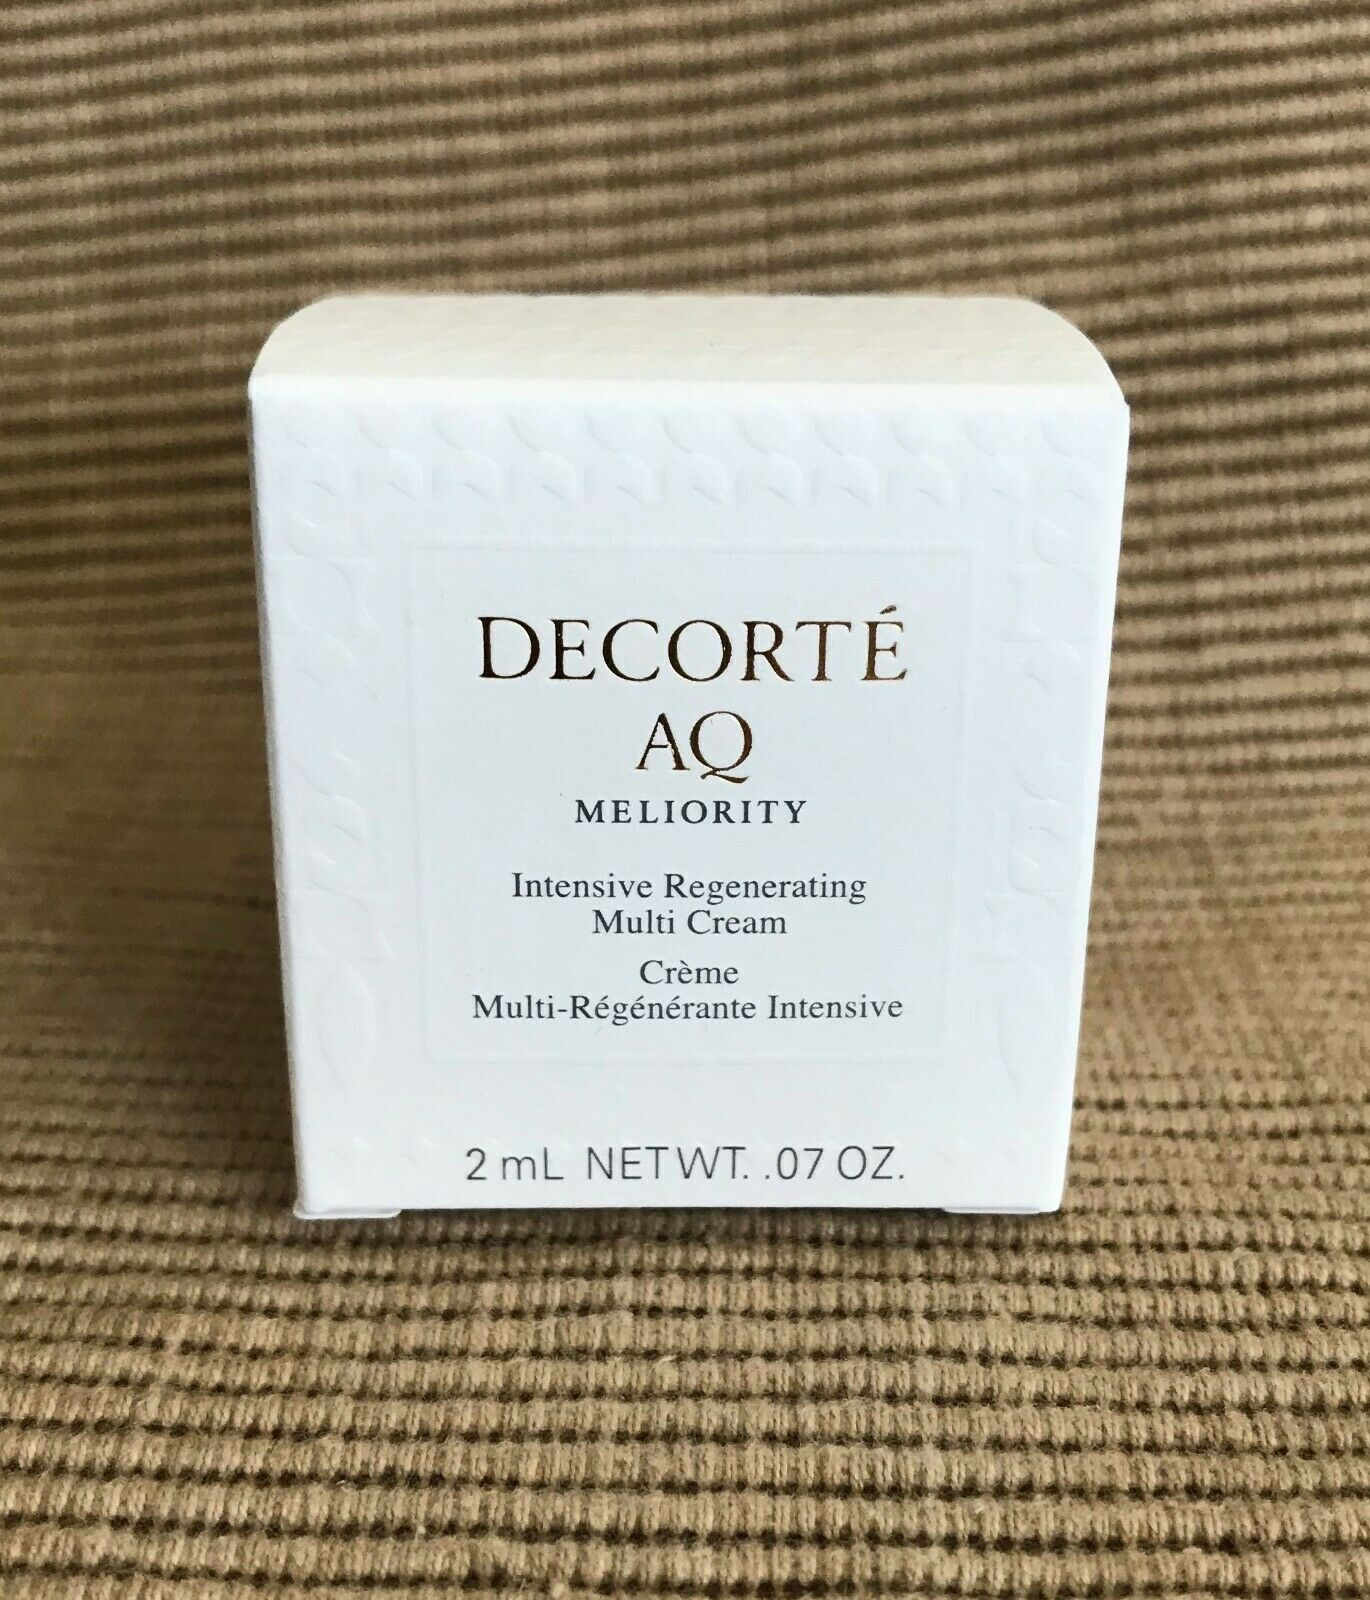 New Decorte AQ Meliority Intensive Regenerating Multi Cream 2ML .07 Oz Travel  - $199.99